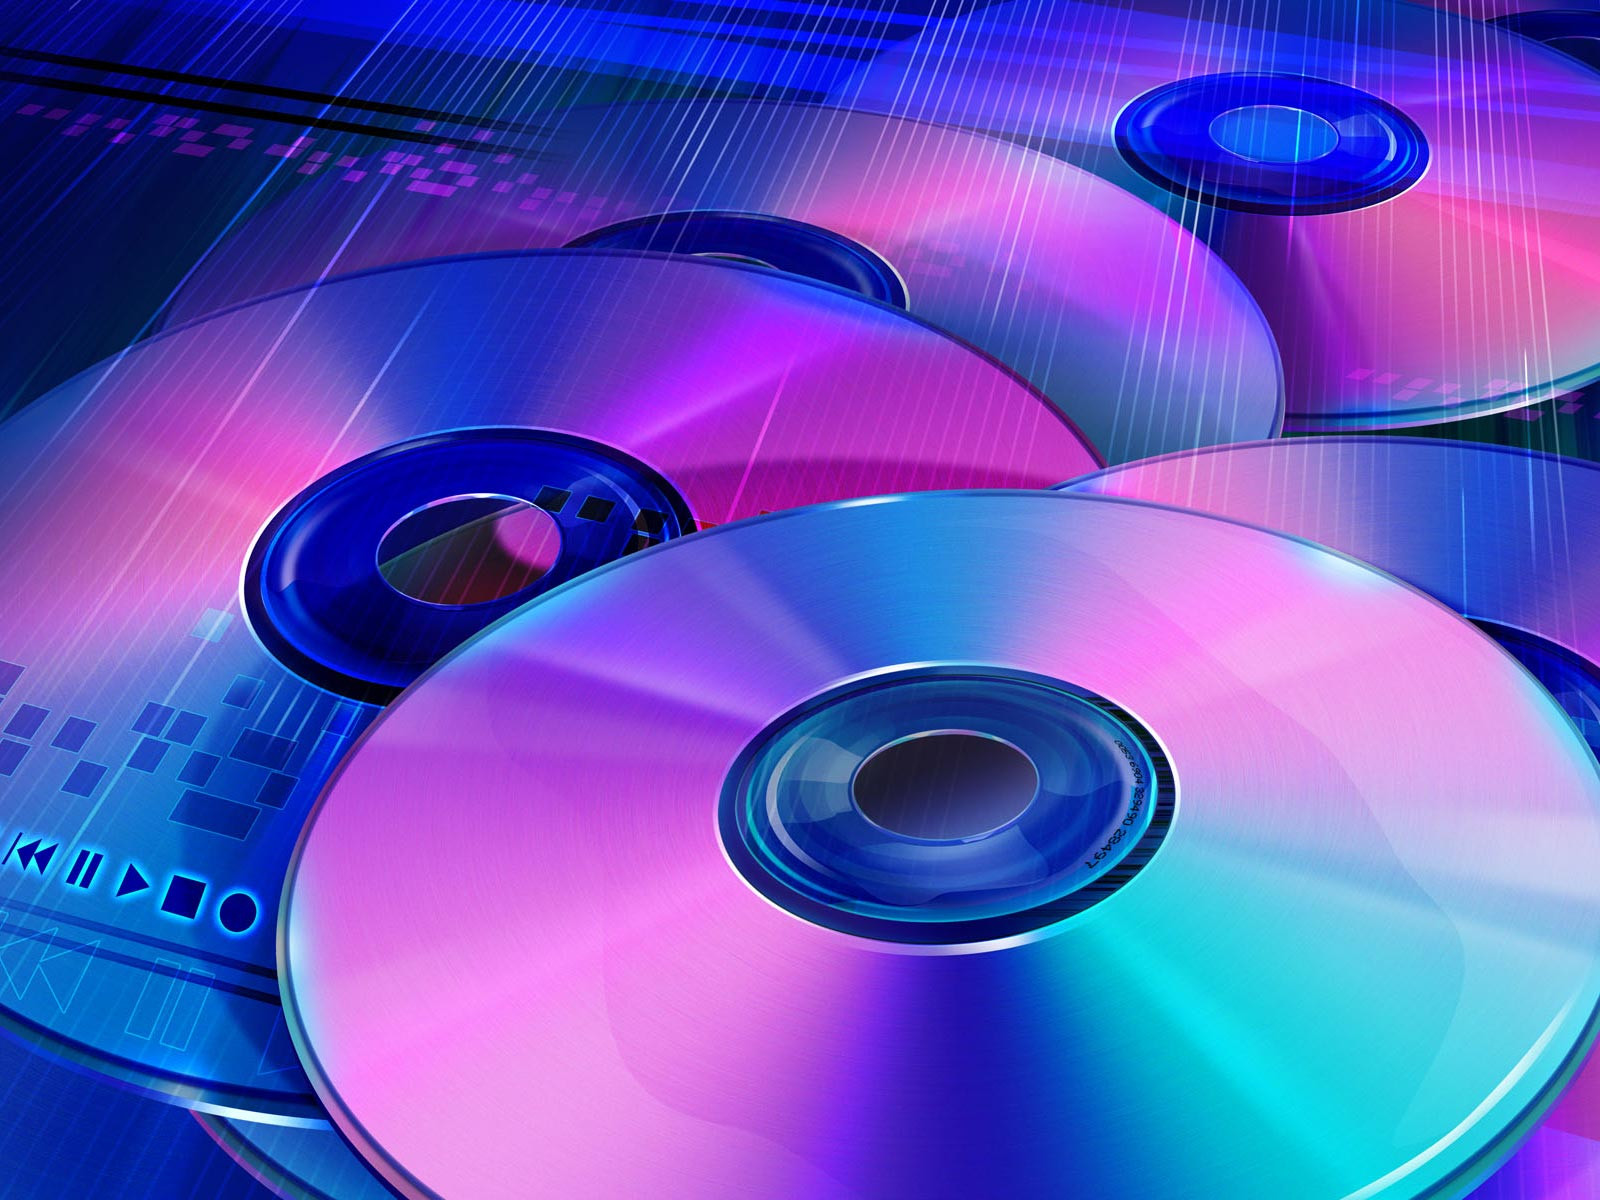 CD_DVD_Collections.jpg